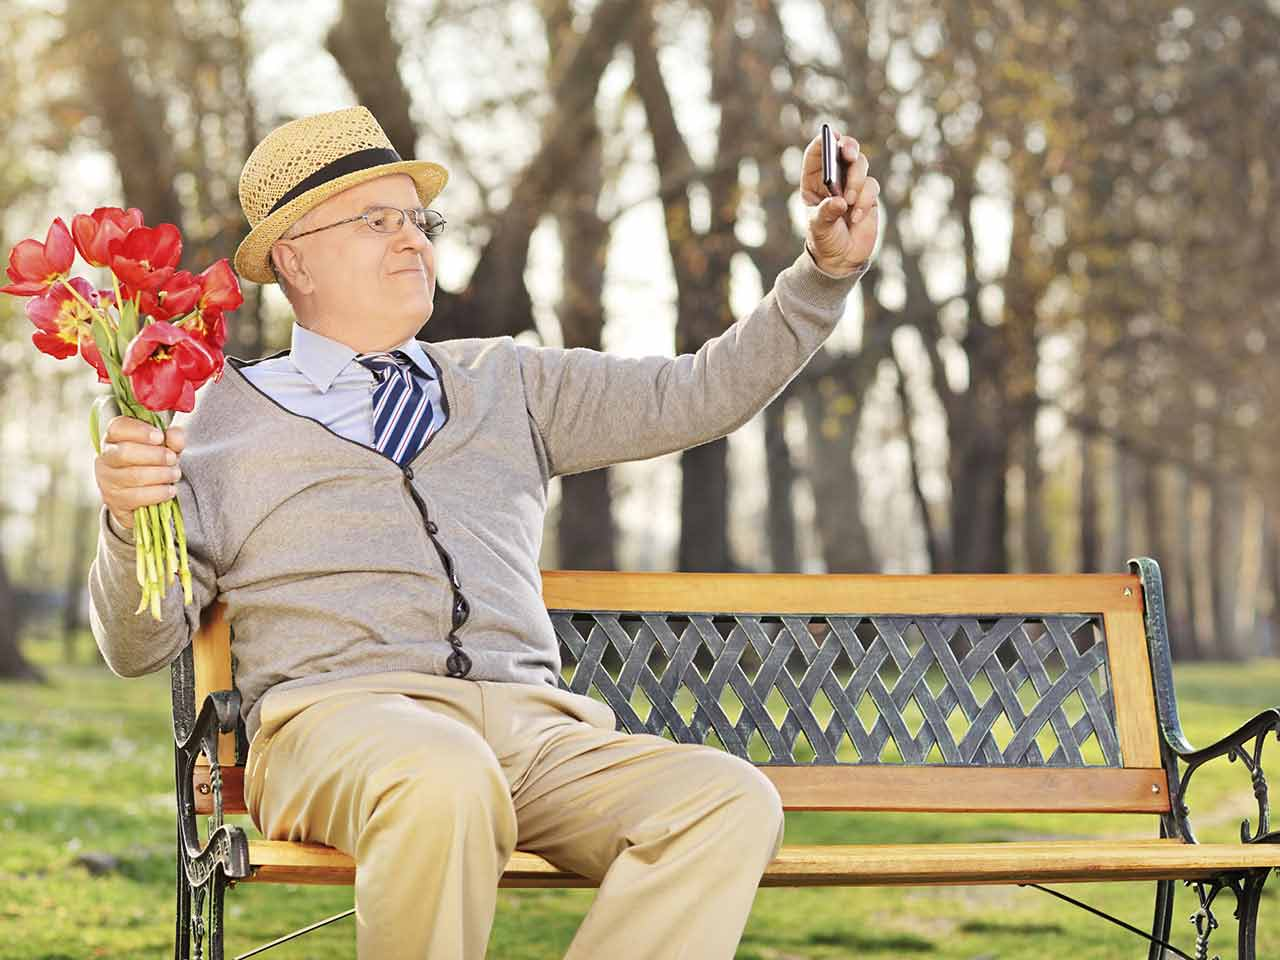 Senior gentleman sitting on bench with flowers wiating for a date